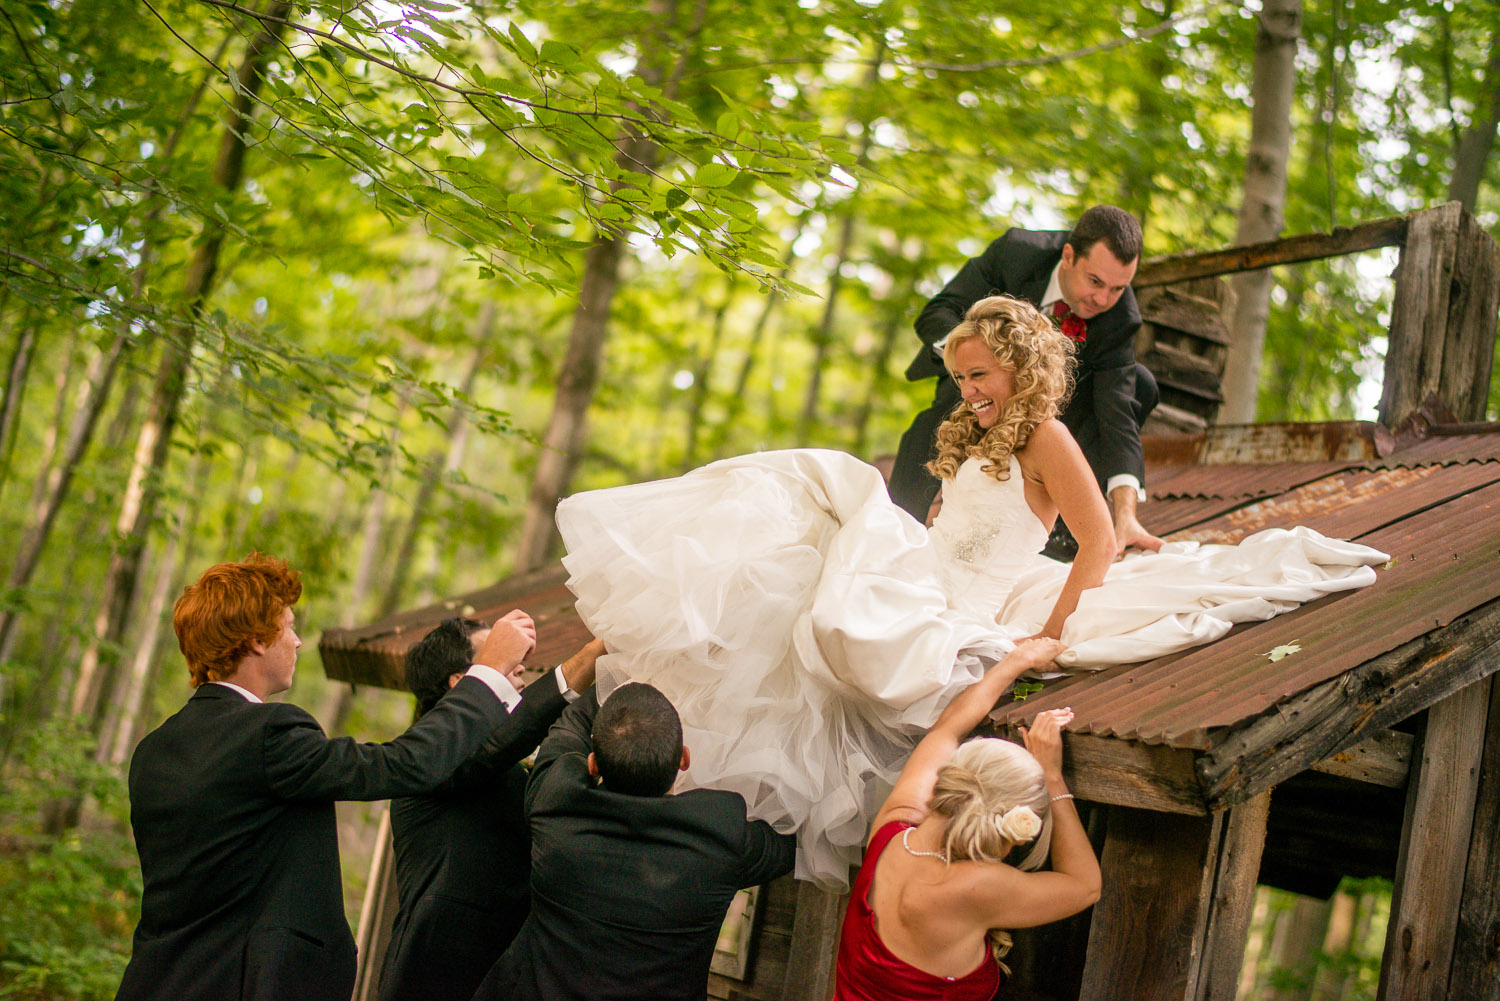 Have a schedule, but don't forget to be spontaneous - like hopping up on a rickety old rusty sugar shack. It's true what they say, you can't catch tetanus on your wedding day.